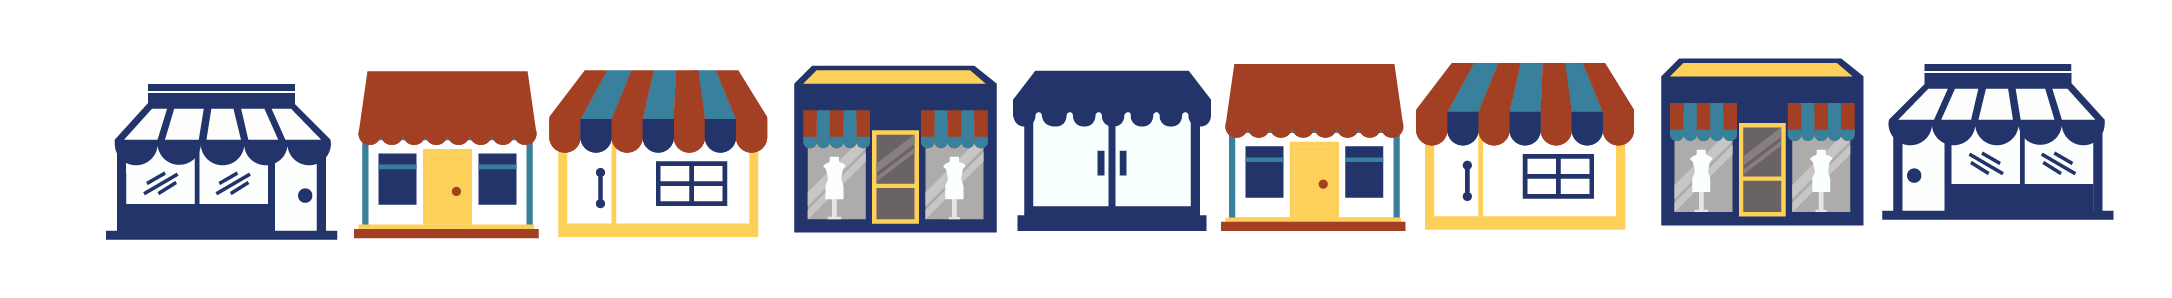 Illustration of a row of storefronts.